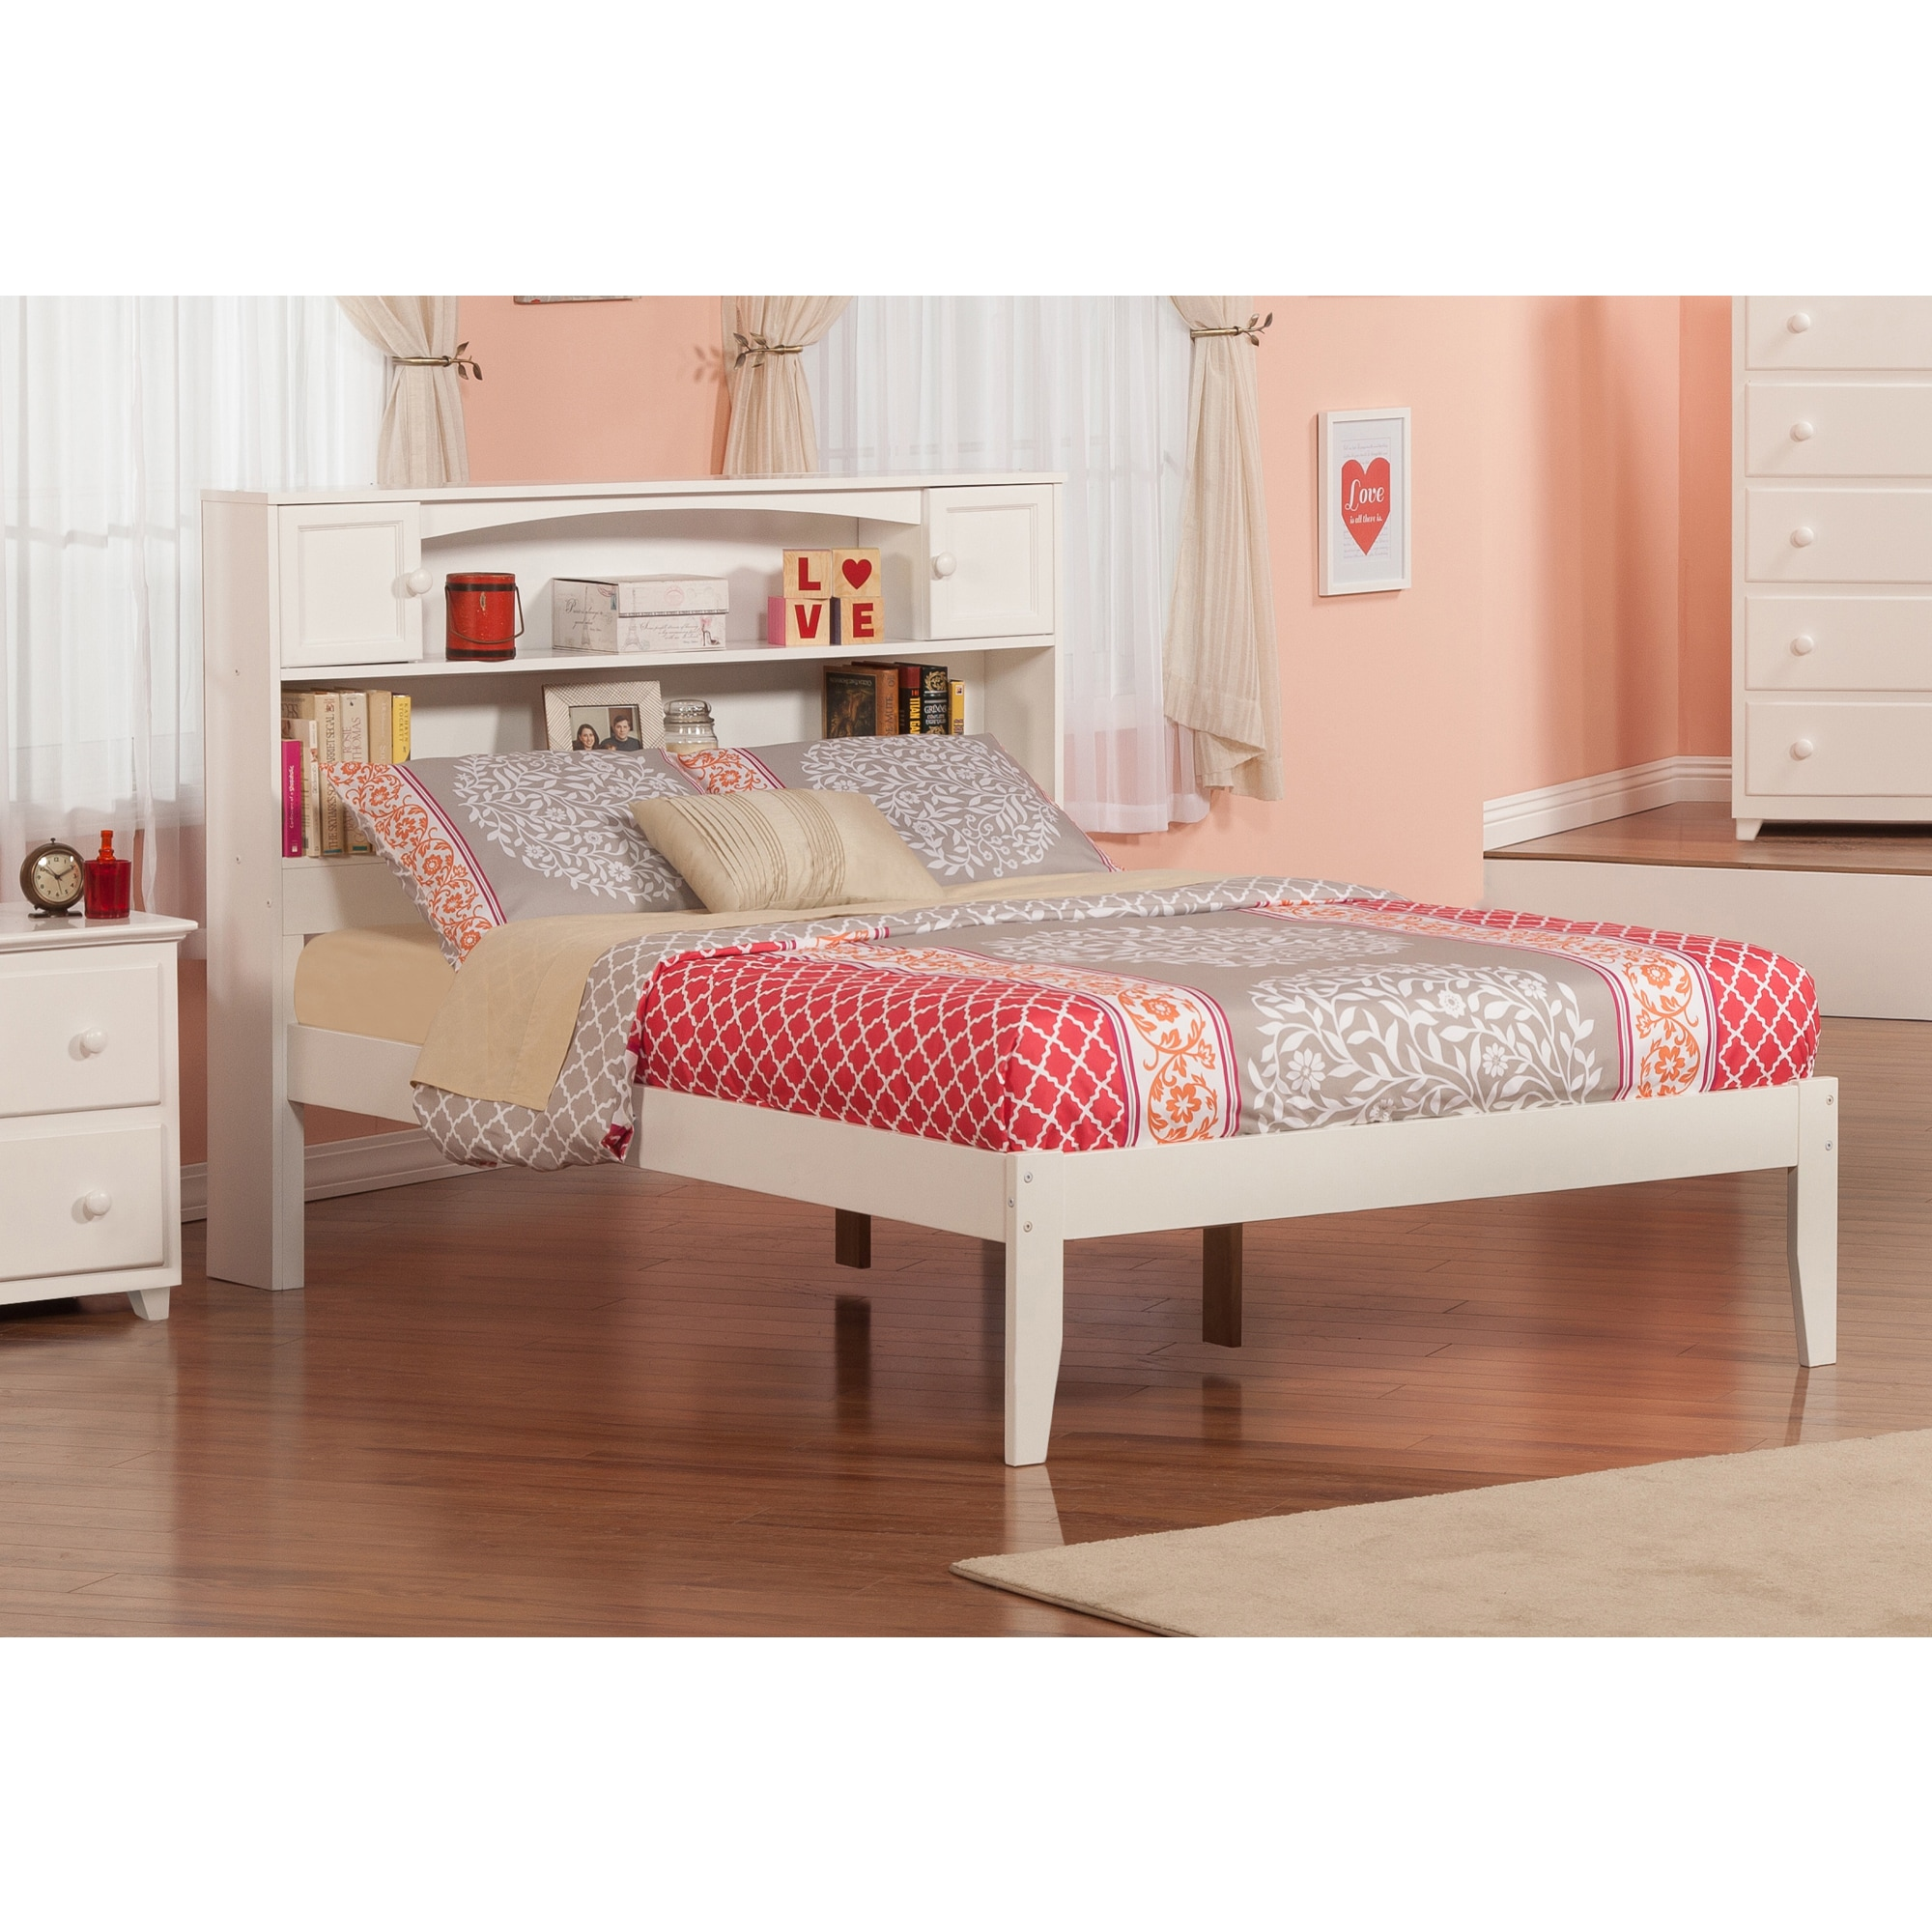 Atlantic Newport White Full-size Open-foot Bed (Size & Co...